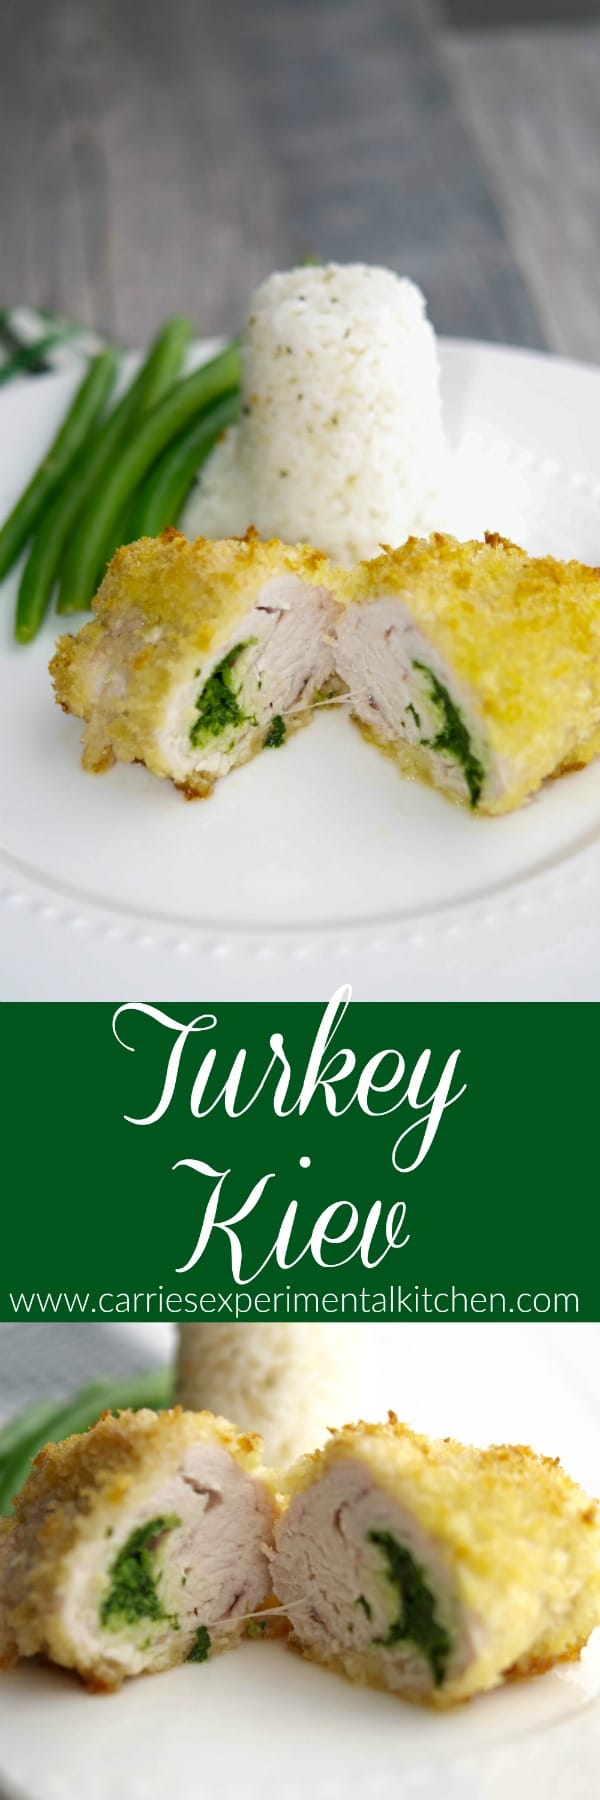 Turkey Kiev: Boneless turkey breast stuffed with a mixture of butter, fresh tarragon, and parsley; then coated with panko breadcrumbs and baked.